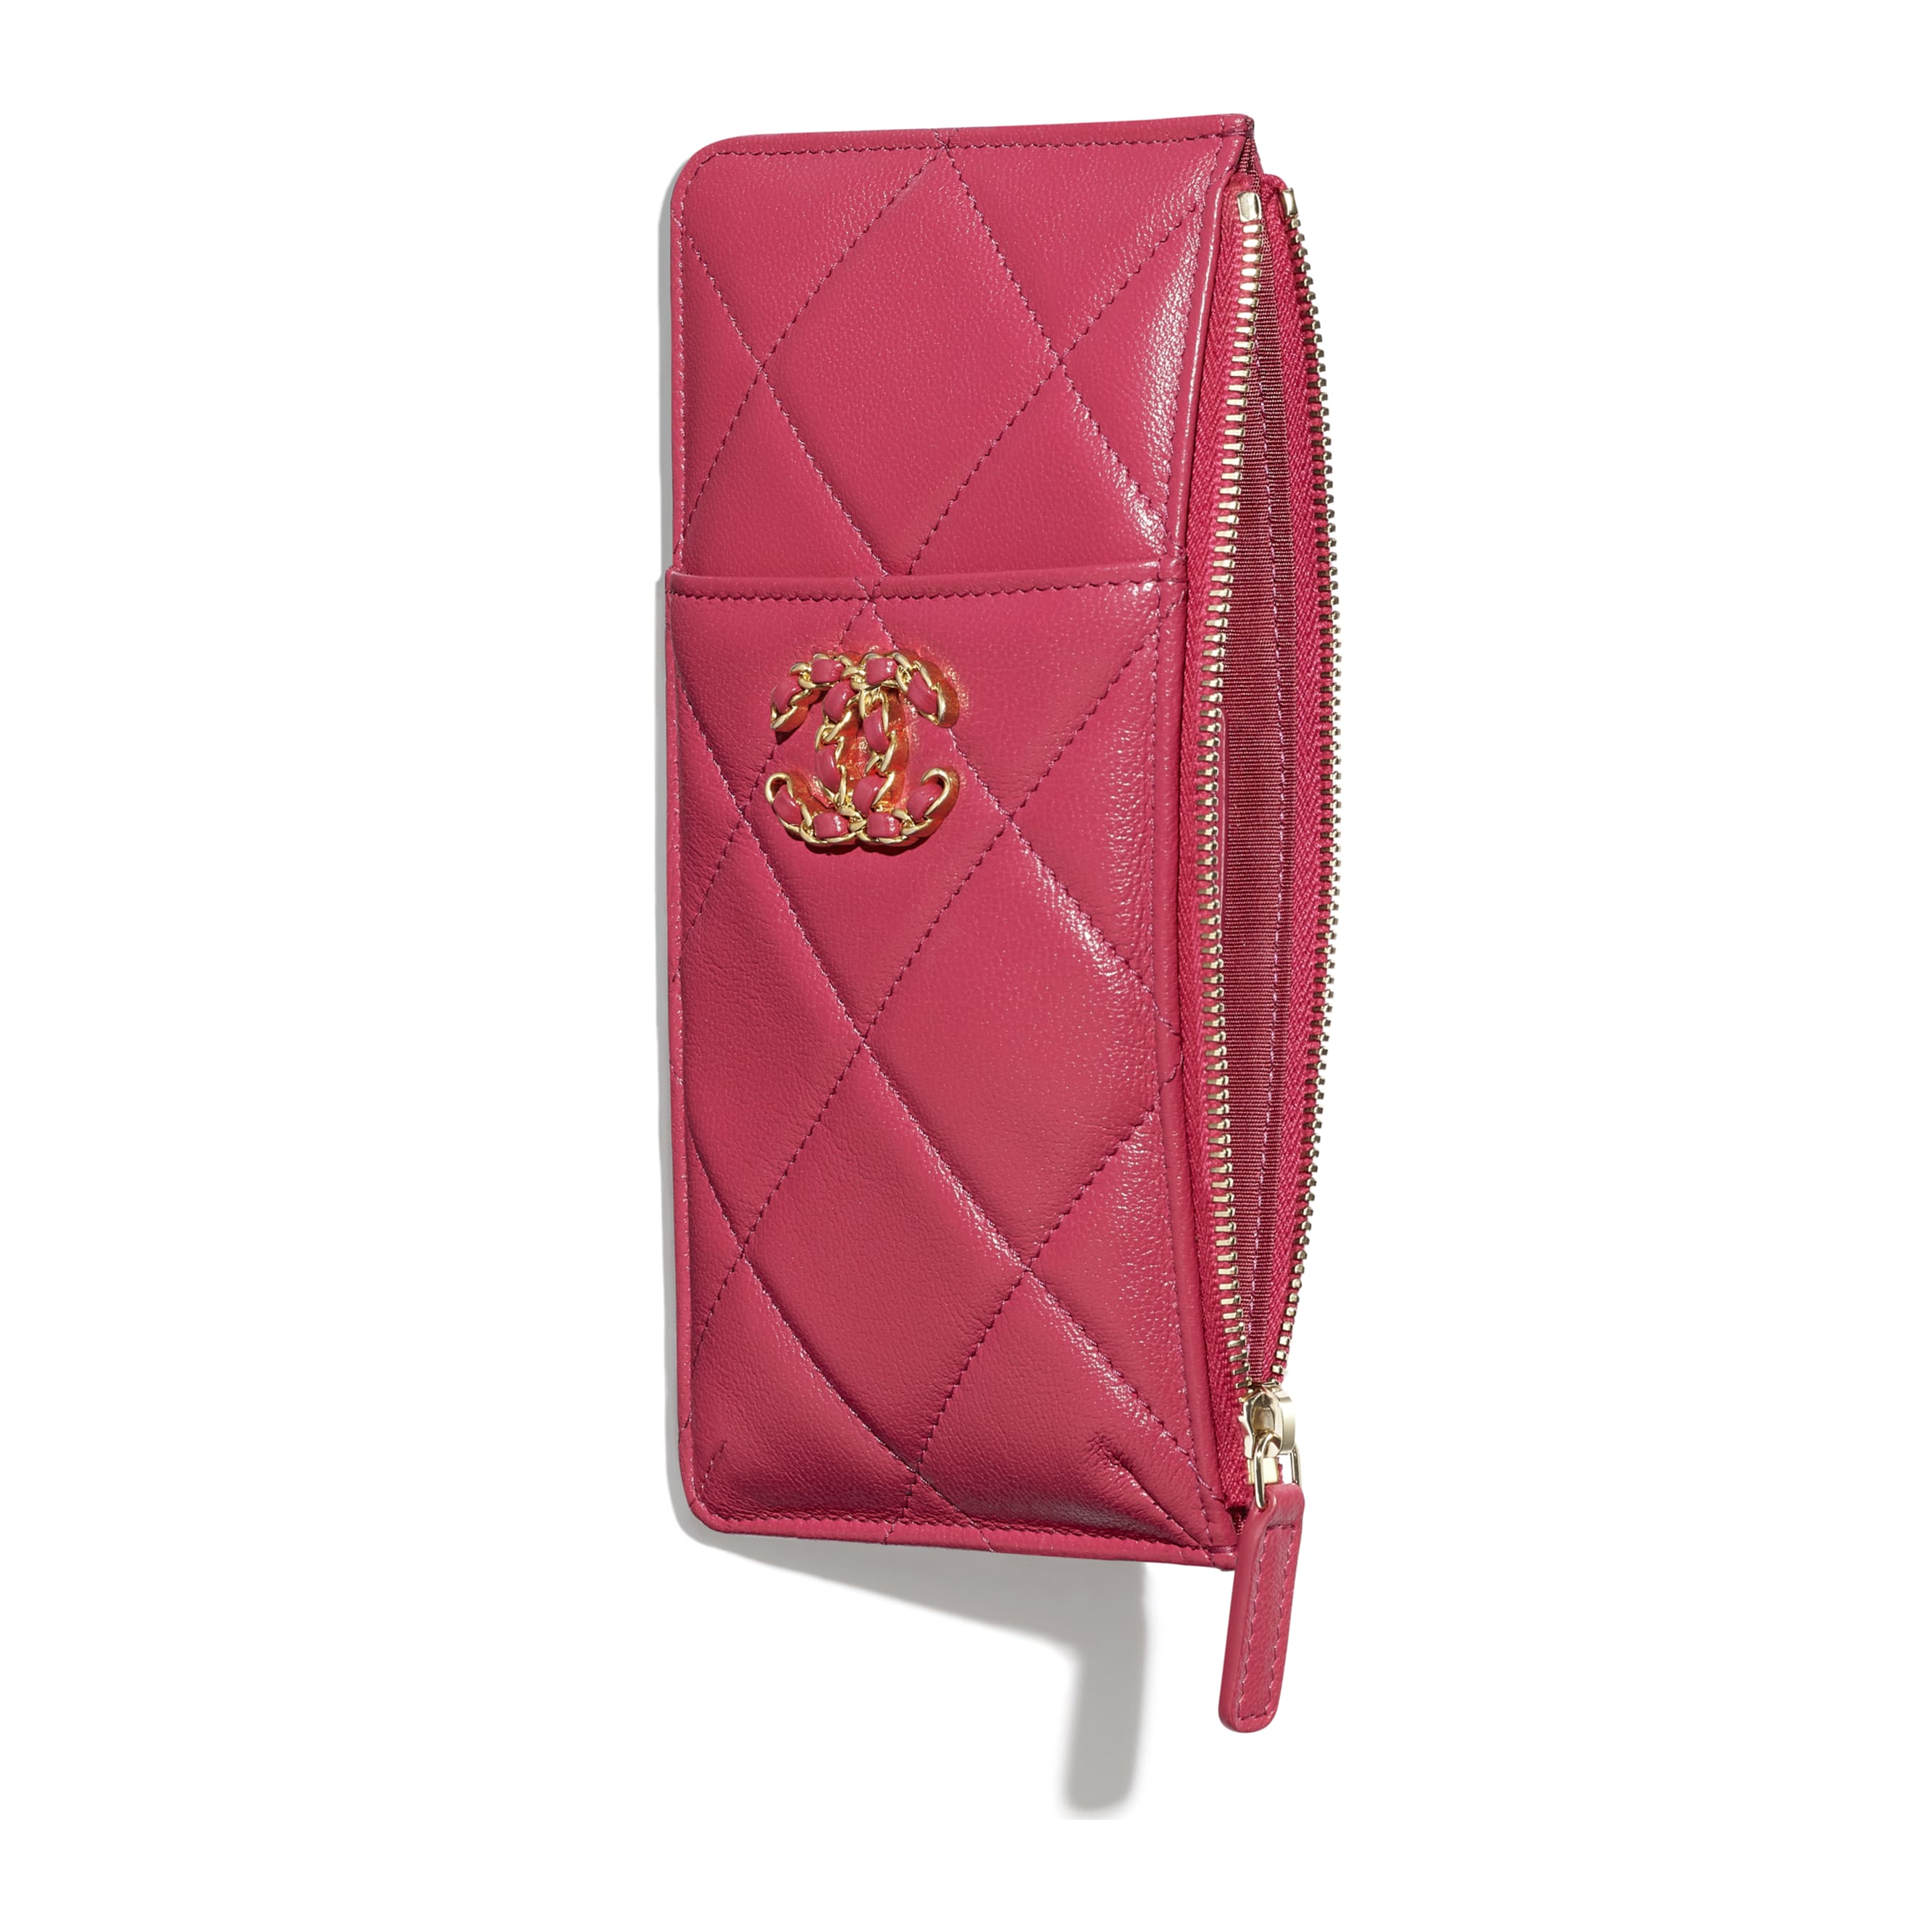 CHANEL 19 Phone & Card Holder - Dark Pink - Lambskin, Gold-Tone, Silver-Tone & Ruthenium-Finish Metal - Other view - see standard sized version